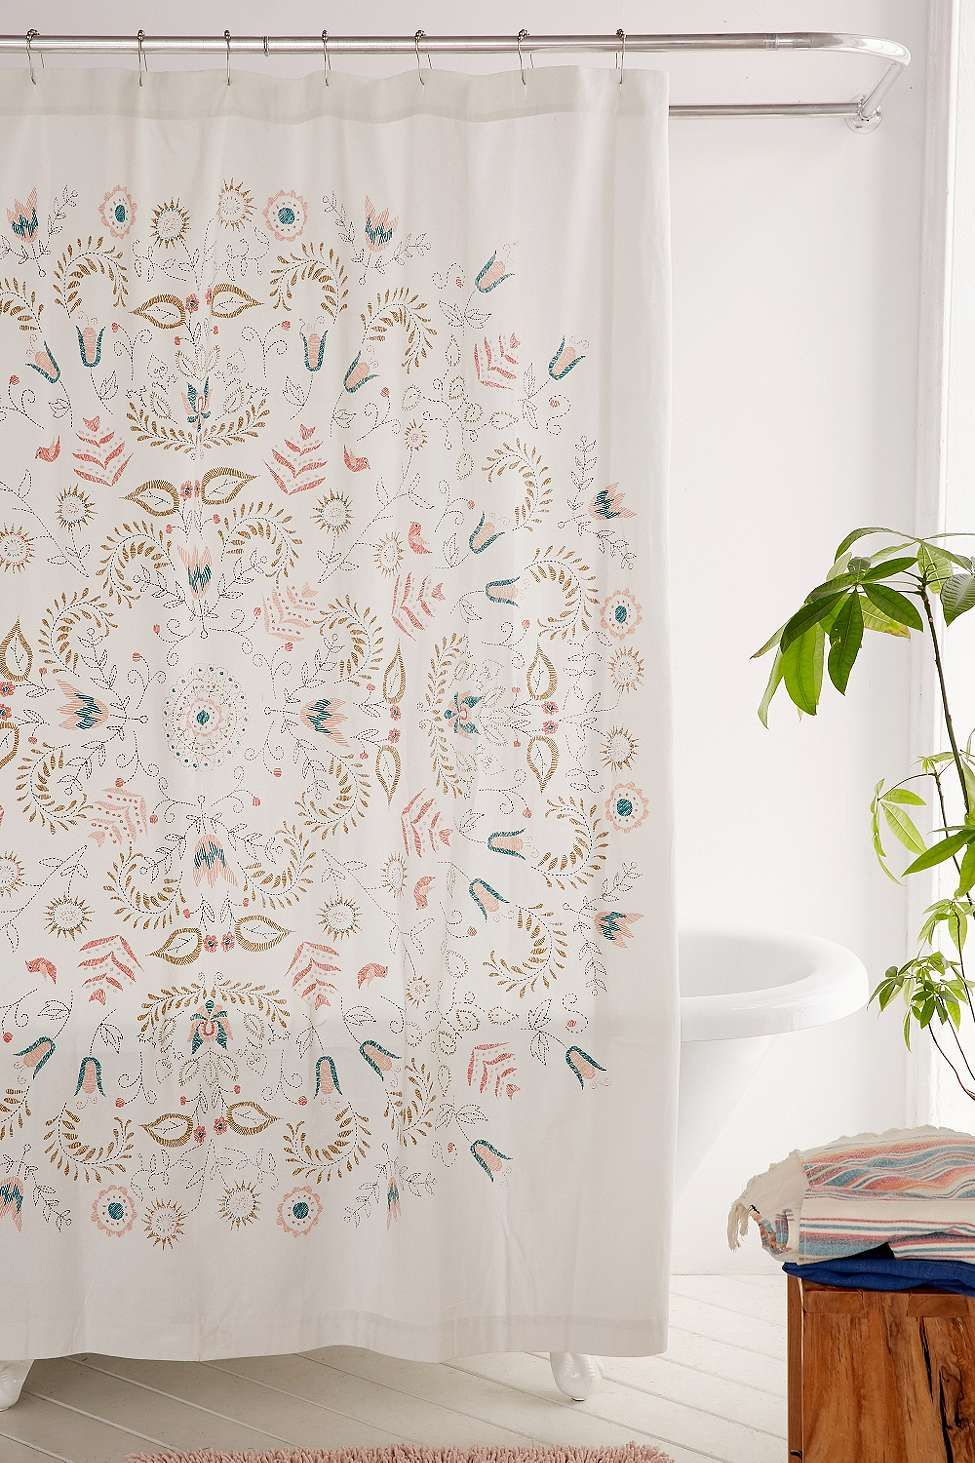 milly medallion shower curtain urban outfitters home boho bathroom cool shower curtains. Black Bedroom Furniture Sets. Home Design Ideas